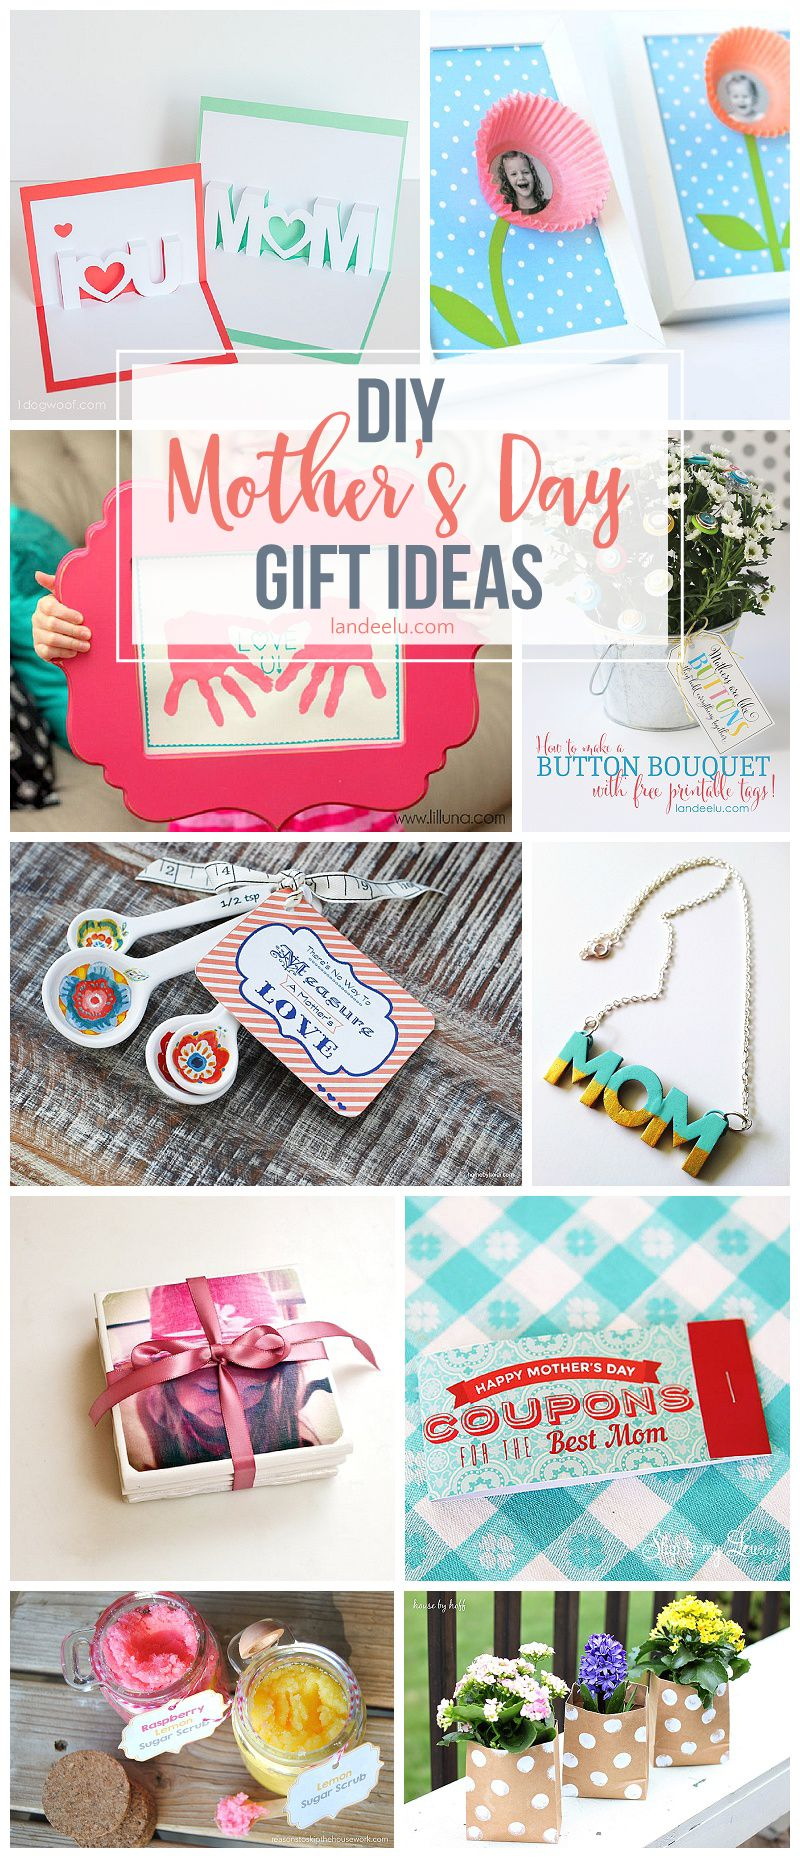 Awesome Diy Mother's Day Gifts Diy Mothers Day Gift Ideas Great Gift Ideas Diy Mothers Day